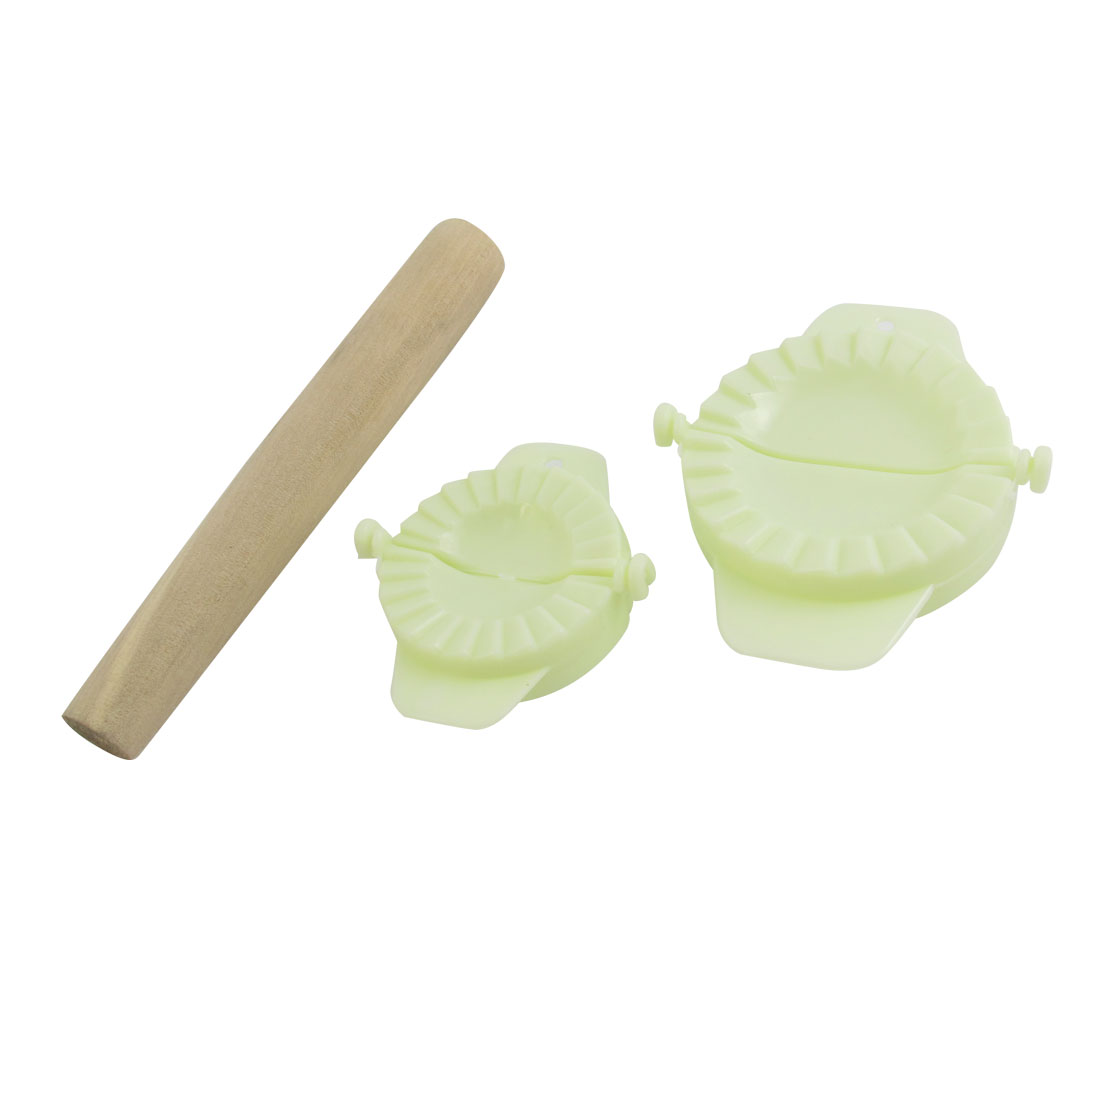 Baker Kitchenware Pasty Wooden Tool Rolling Pin Roller Gyoza Dumpling Mould Set